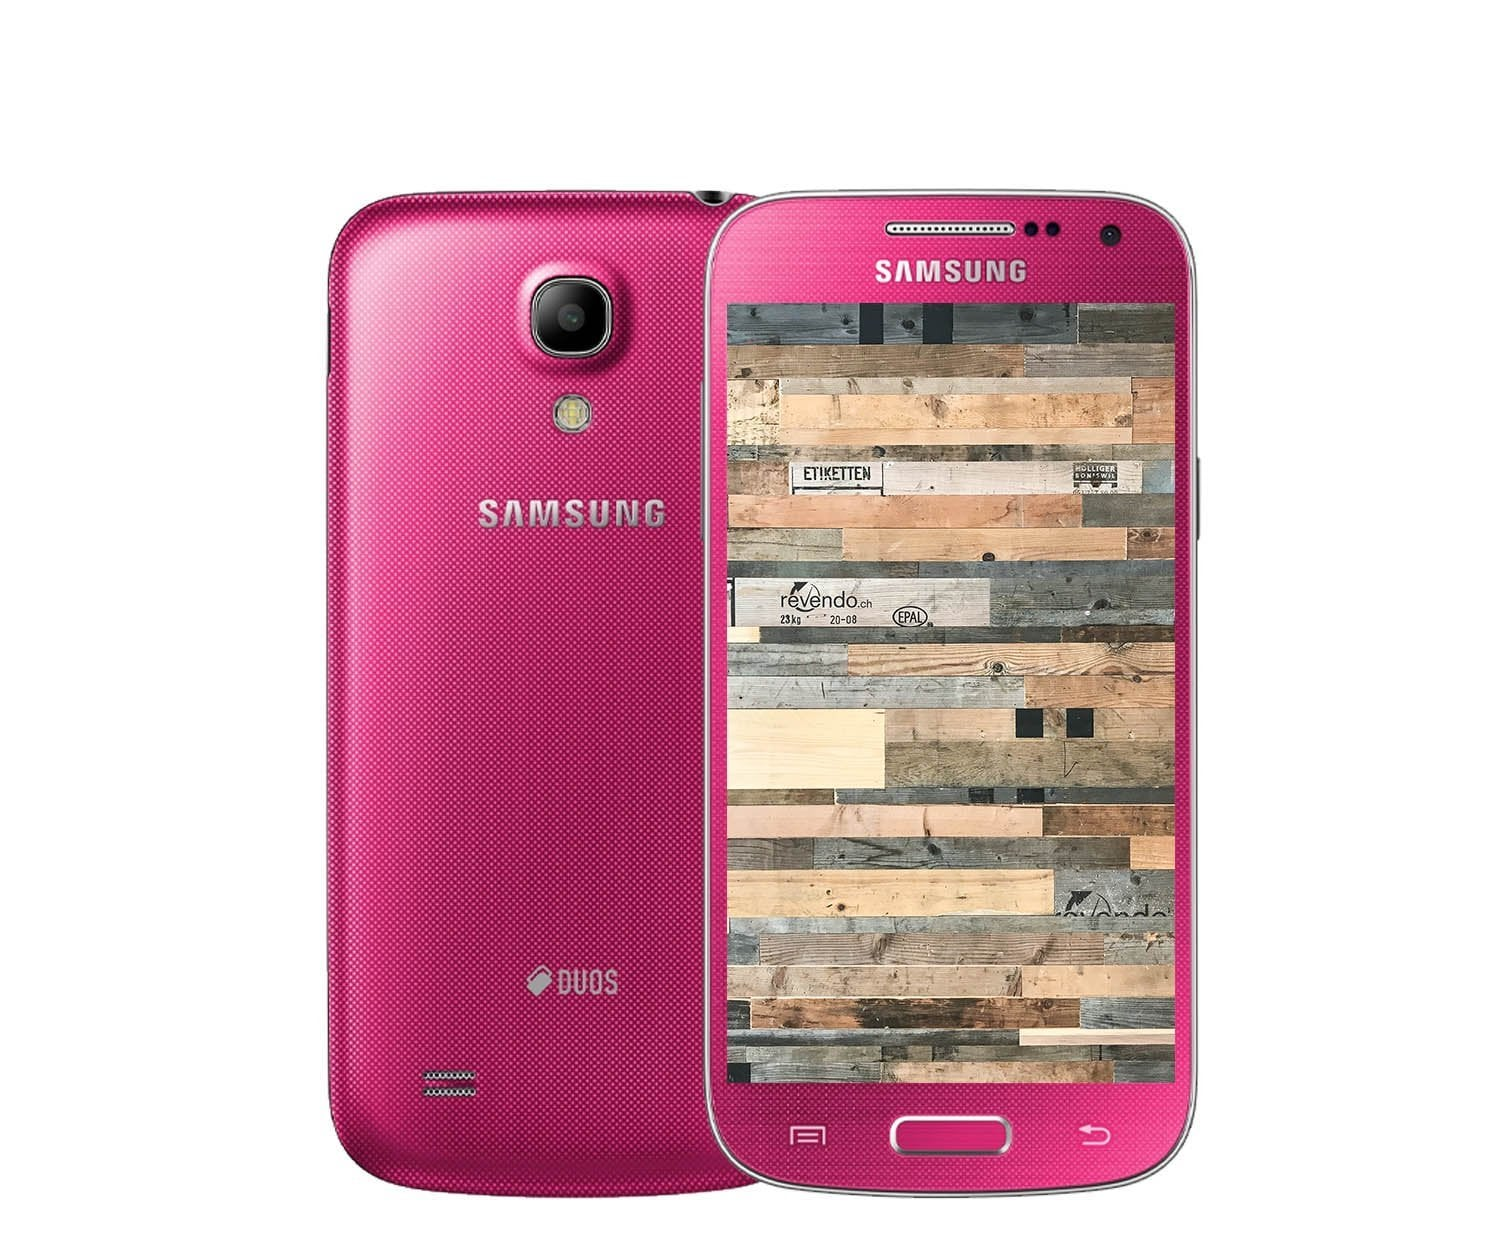 samsung galaxy s4 mini 8 gb pink. Black Bedroom Furniture Sets. Home Design Ideas